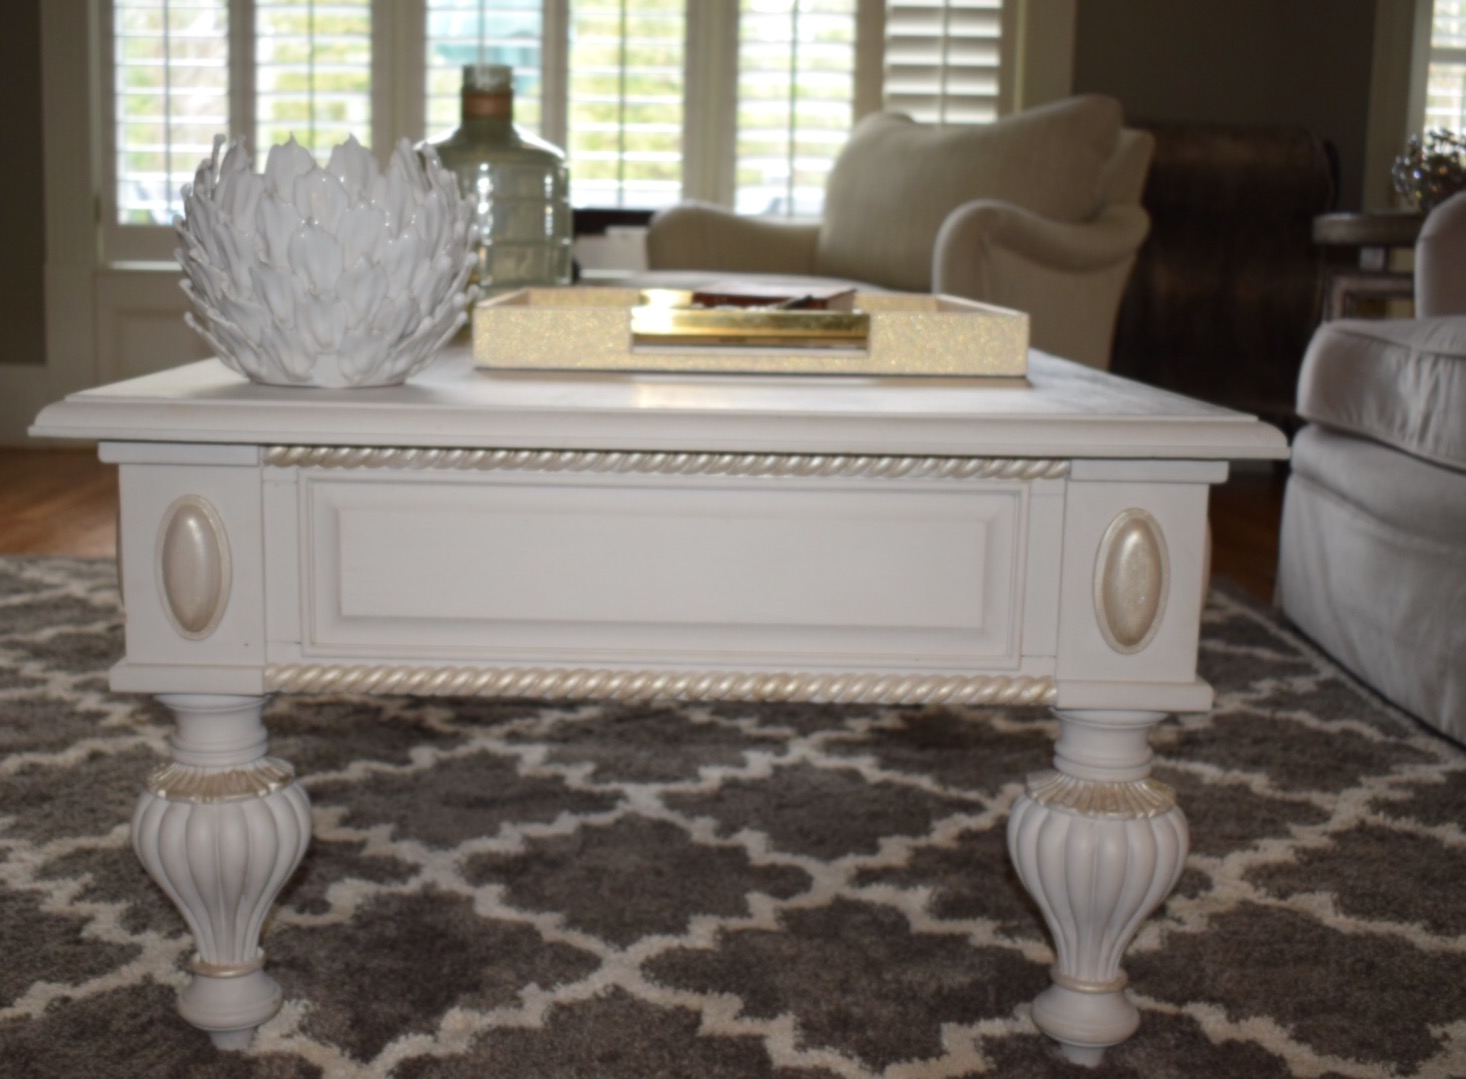 Coffee Table Decor In The Living Room   The Chalk Paint Totally Transformed  This Piece And